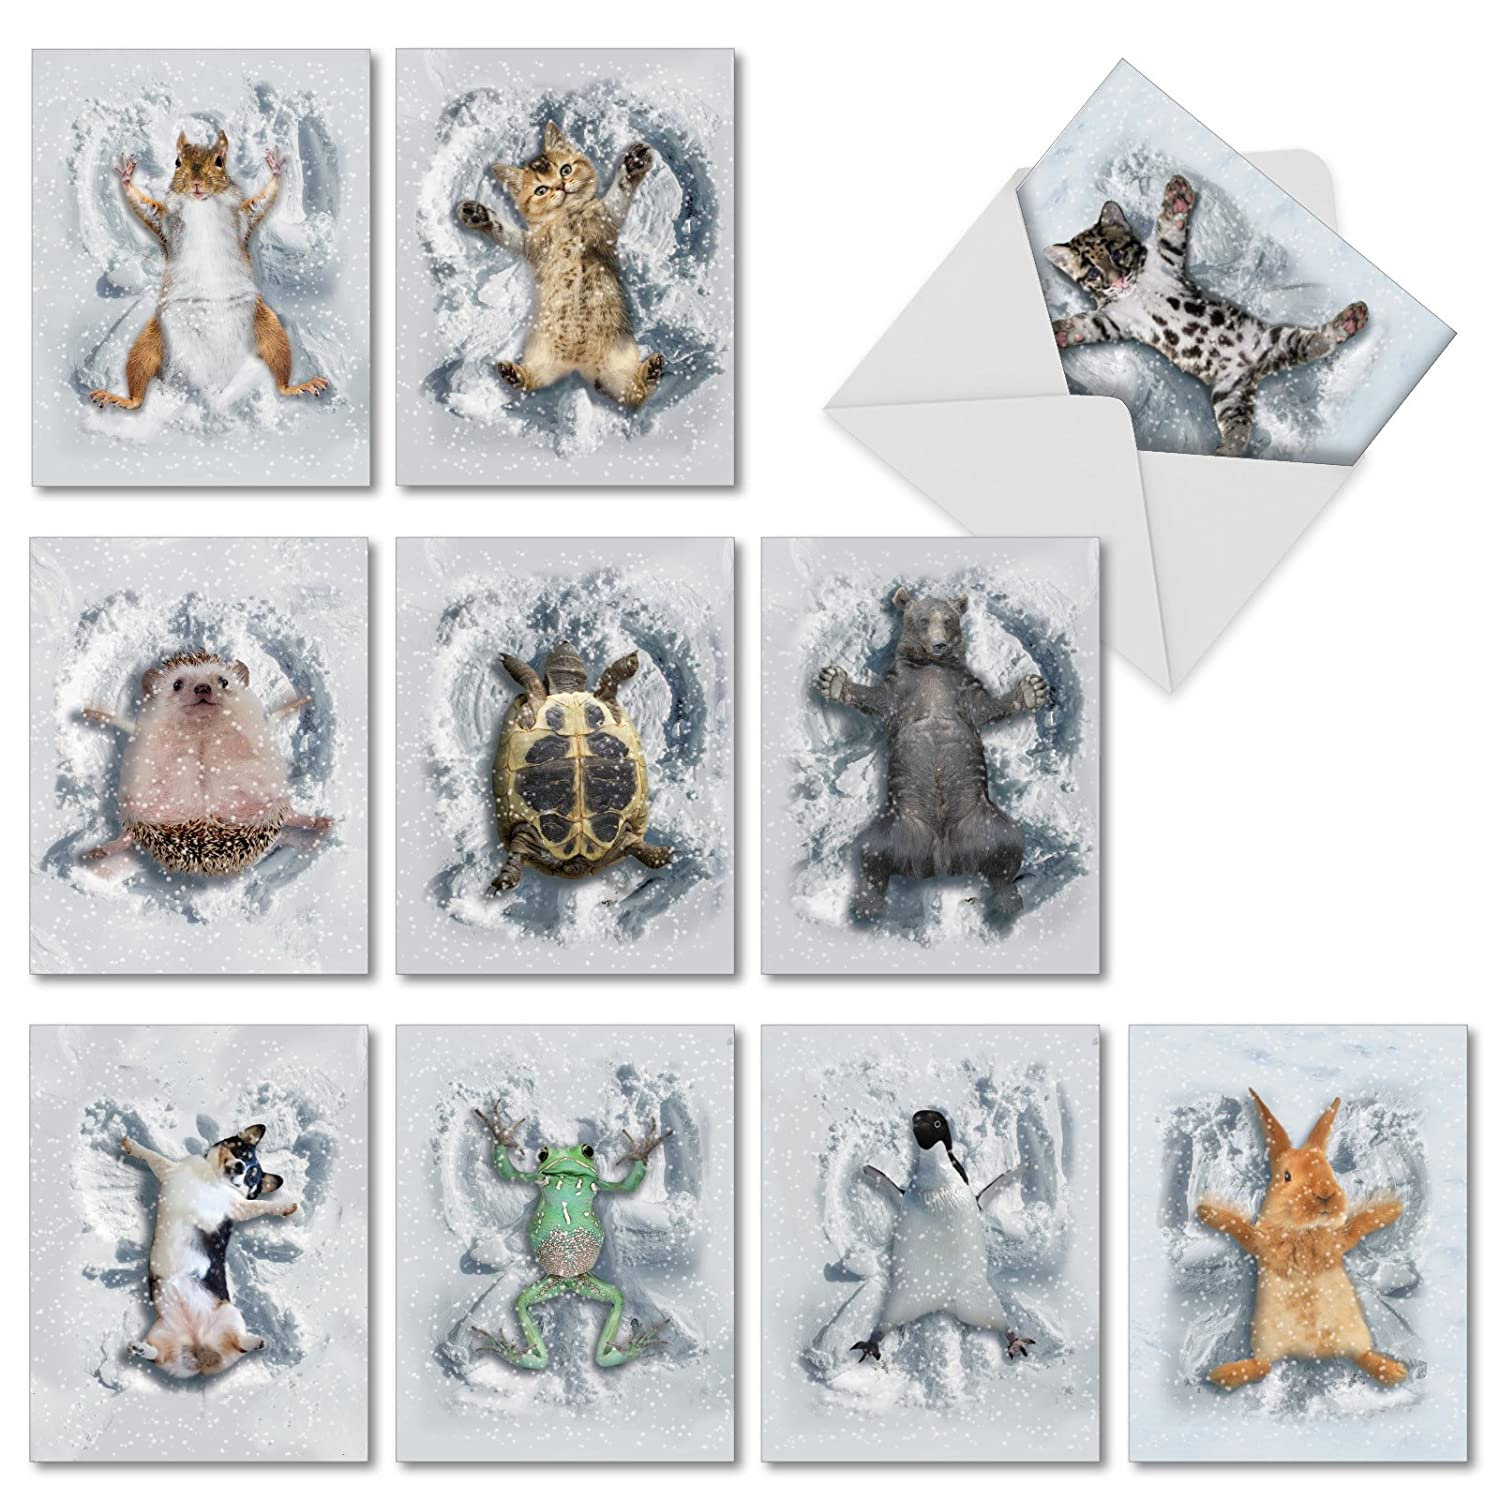 Steampunk Cats Assorted Greeting Cards With Envelopes 10 Pack